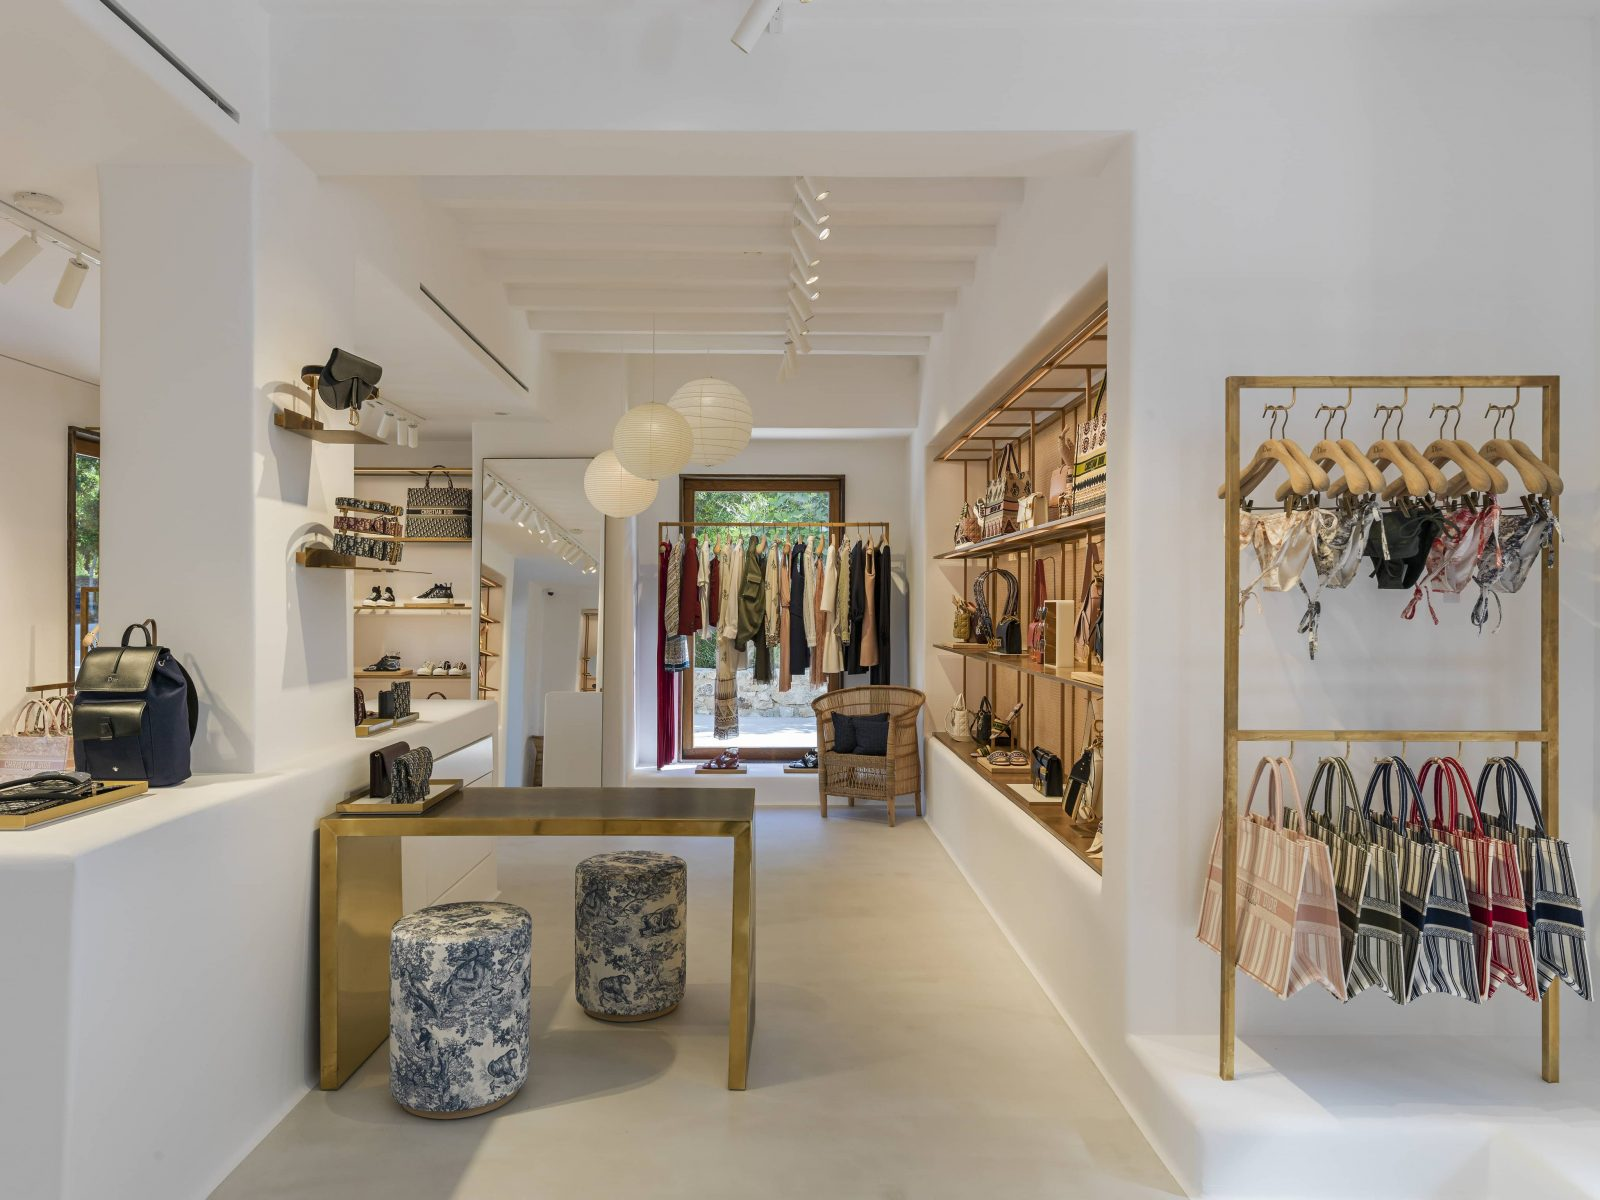 68098fb30 Dior Opens Pop-Up Boutique In Mykonos, Greece